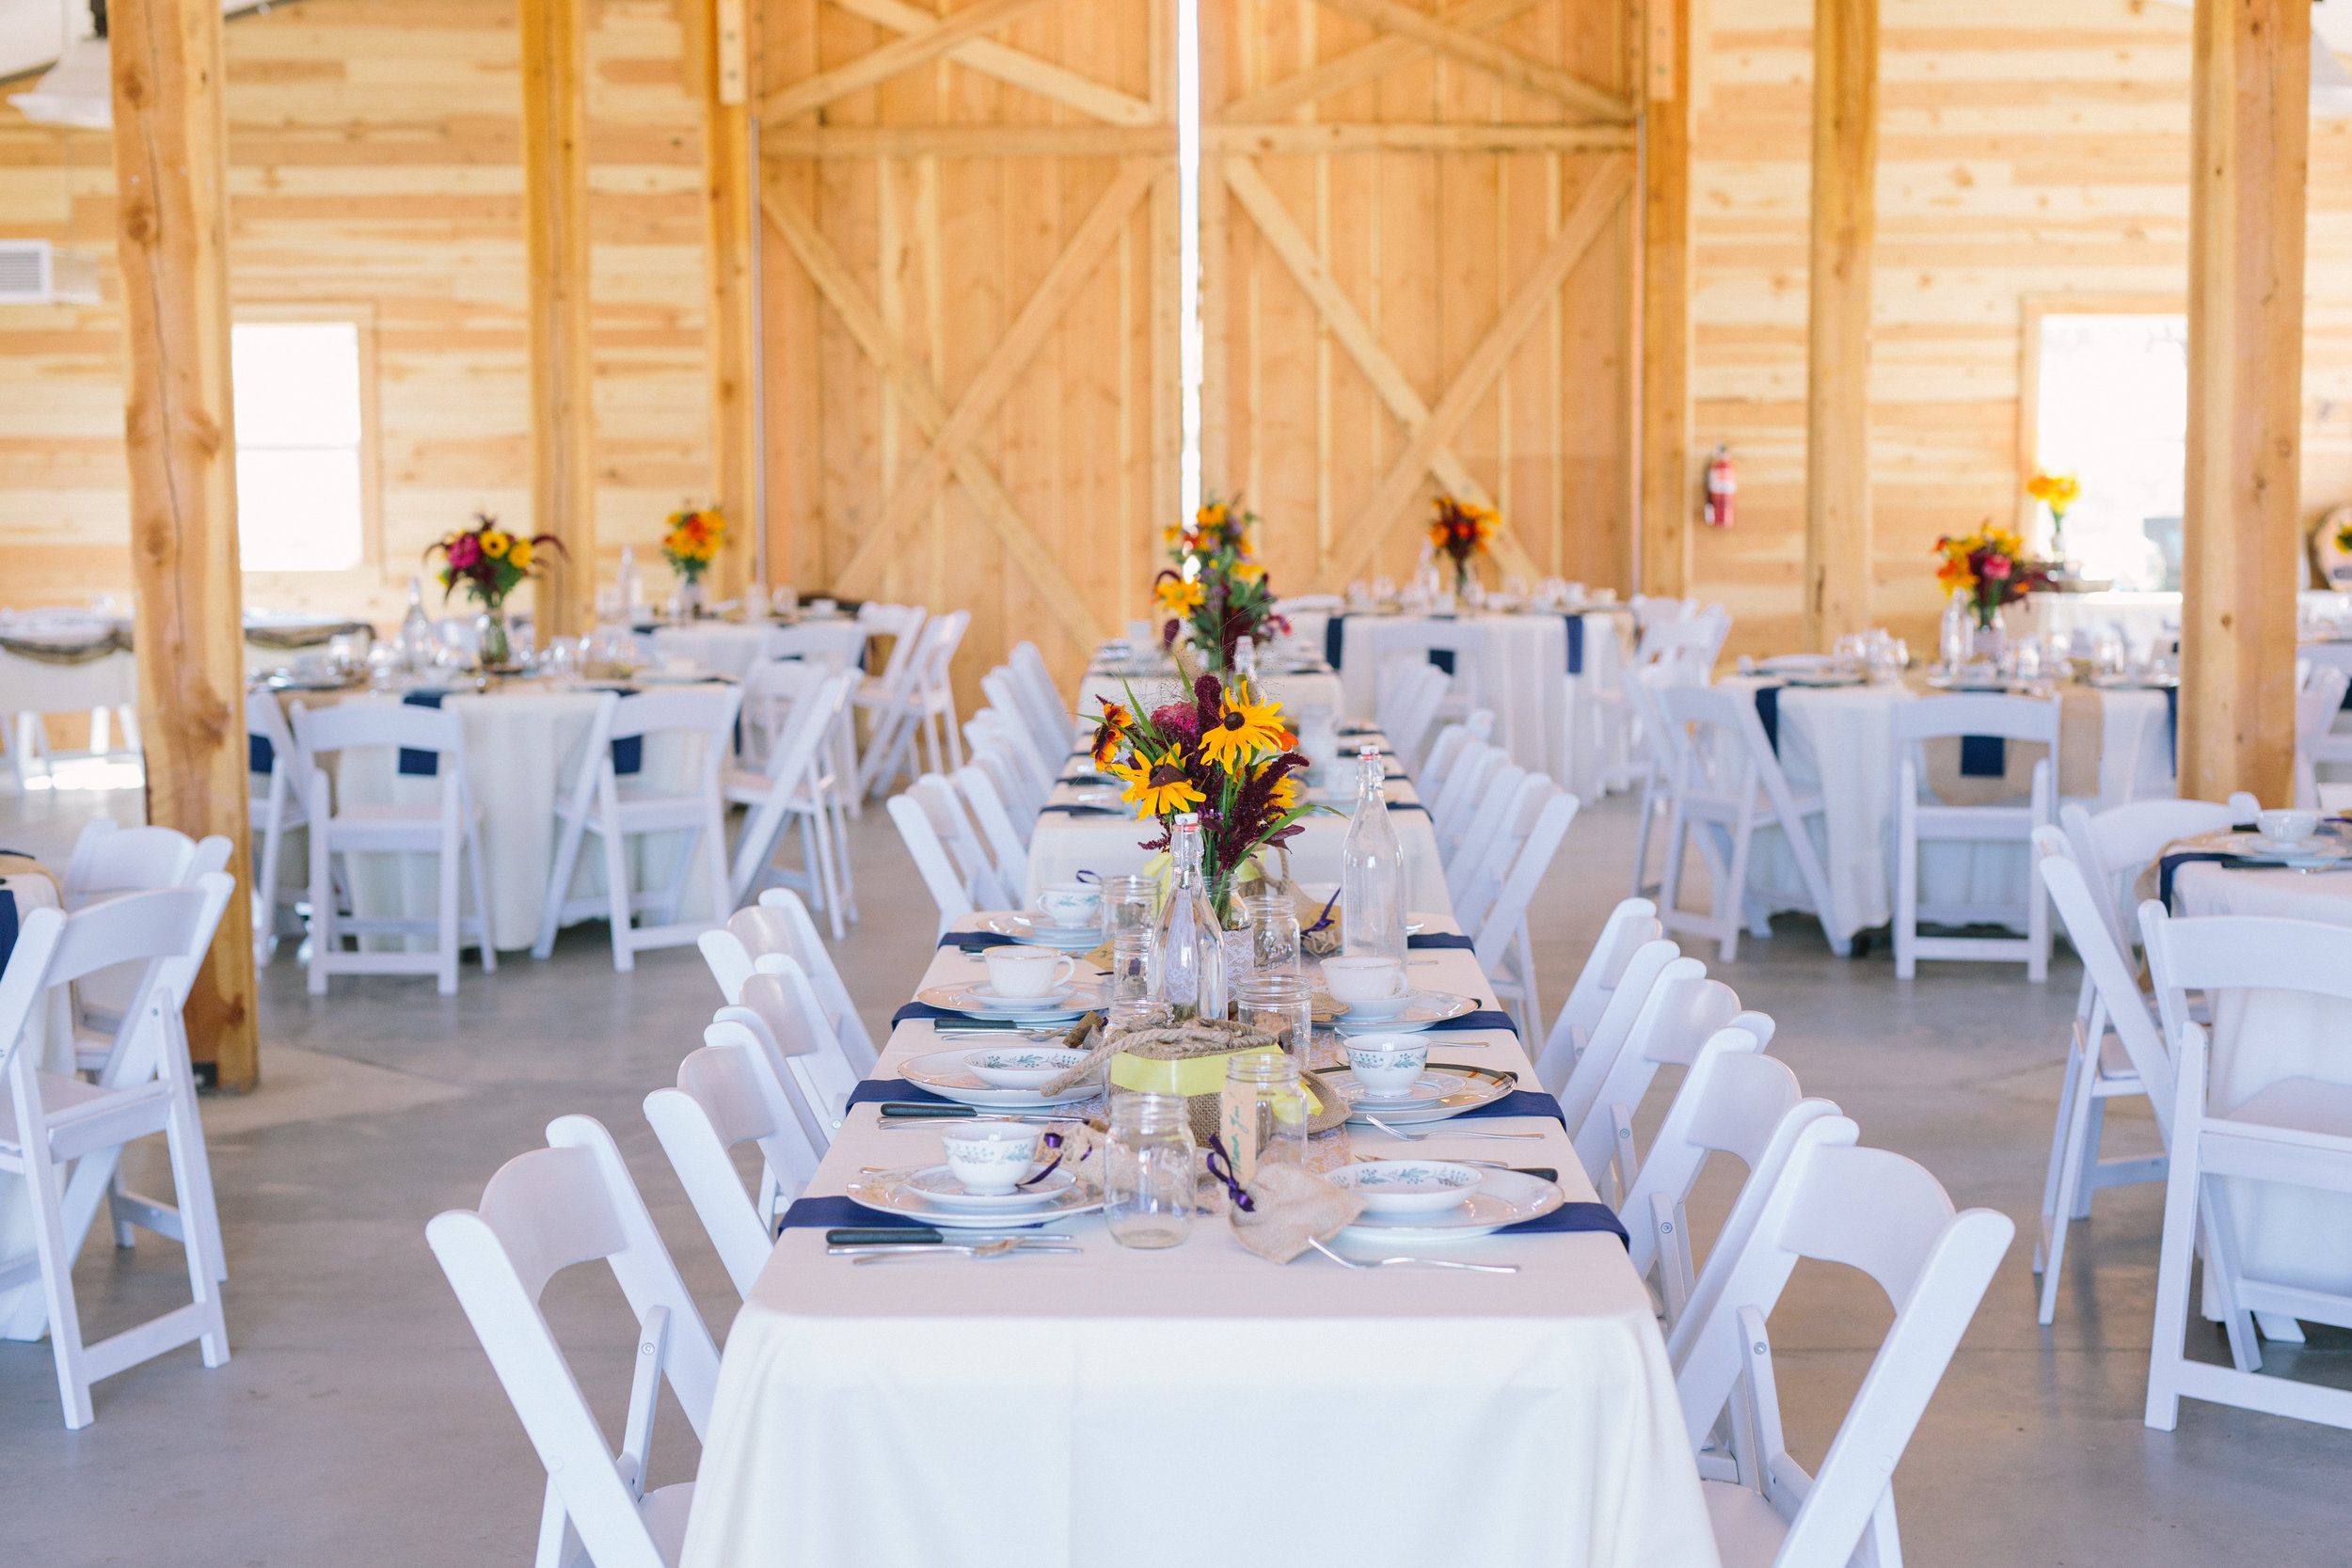 Farm-fresh flowers add a lovely pop of color to dinner in the barn. Photo by Dina Remi Studios.